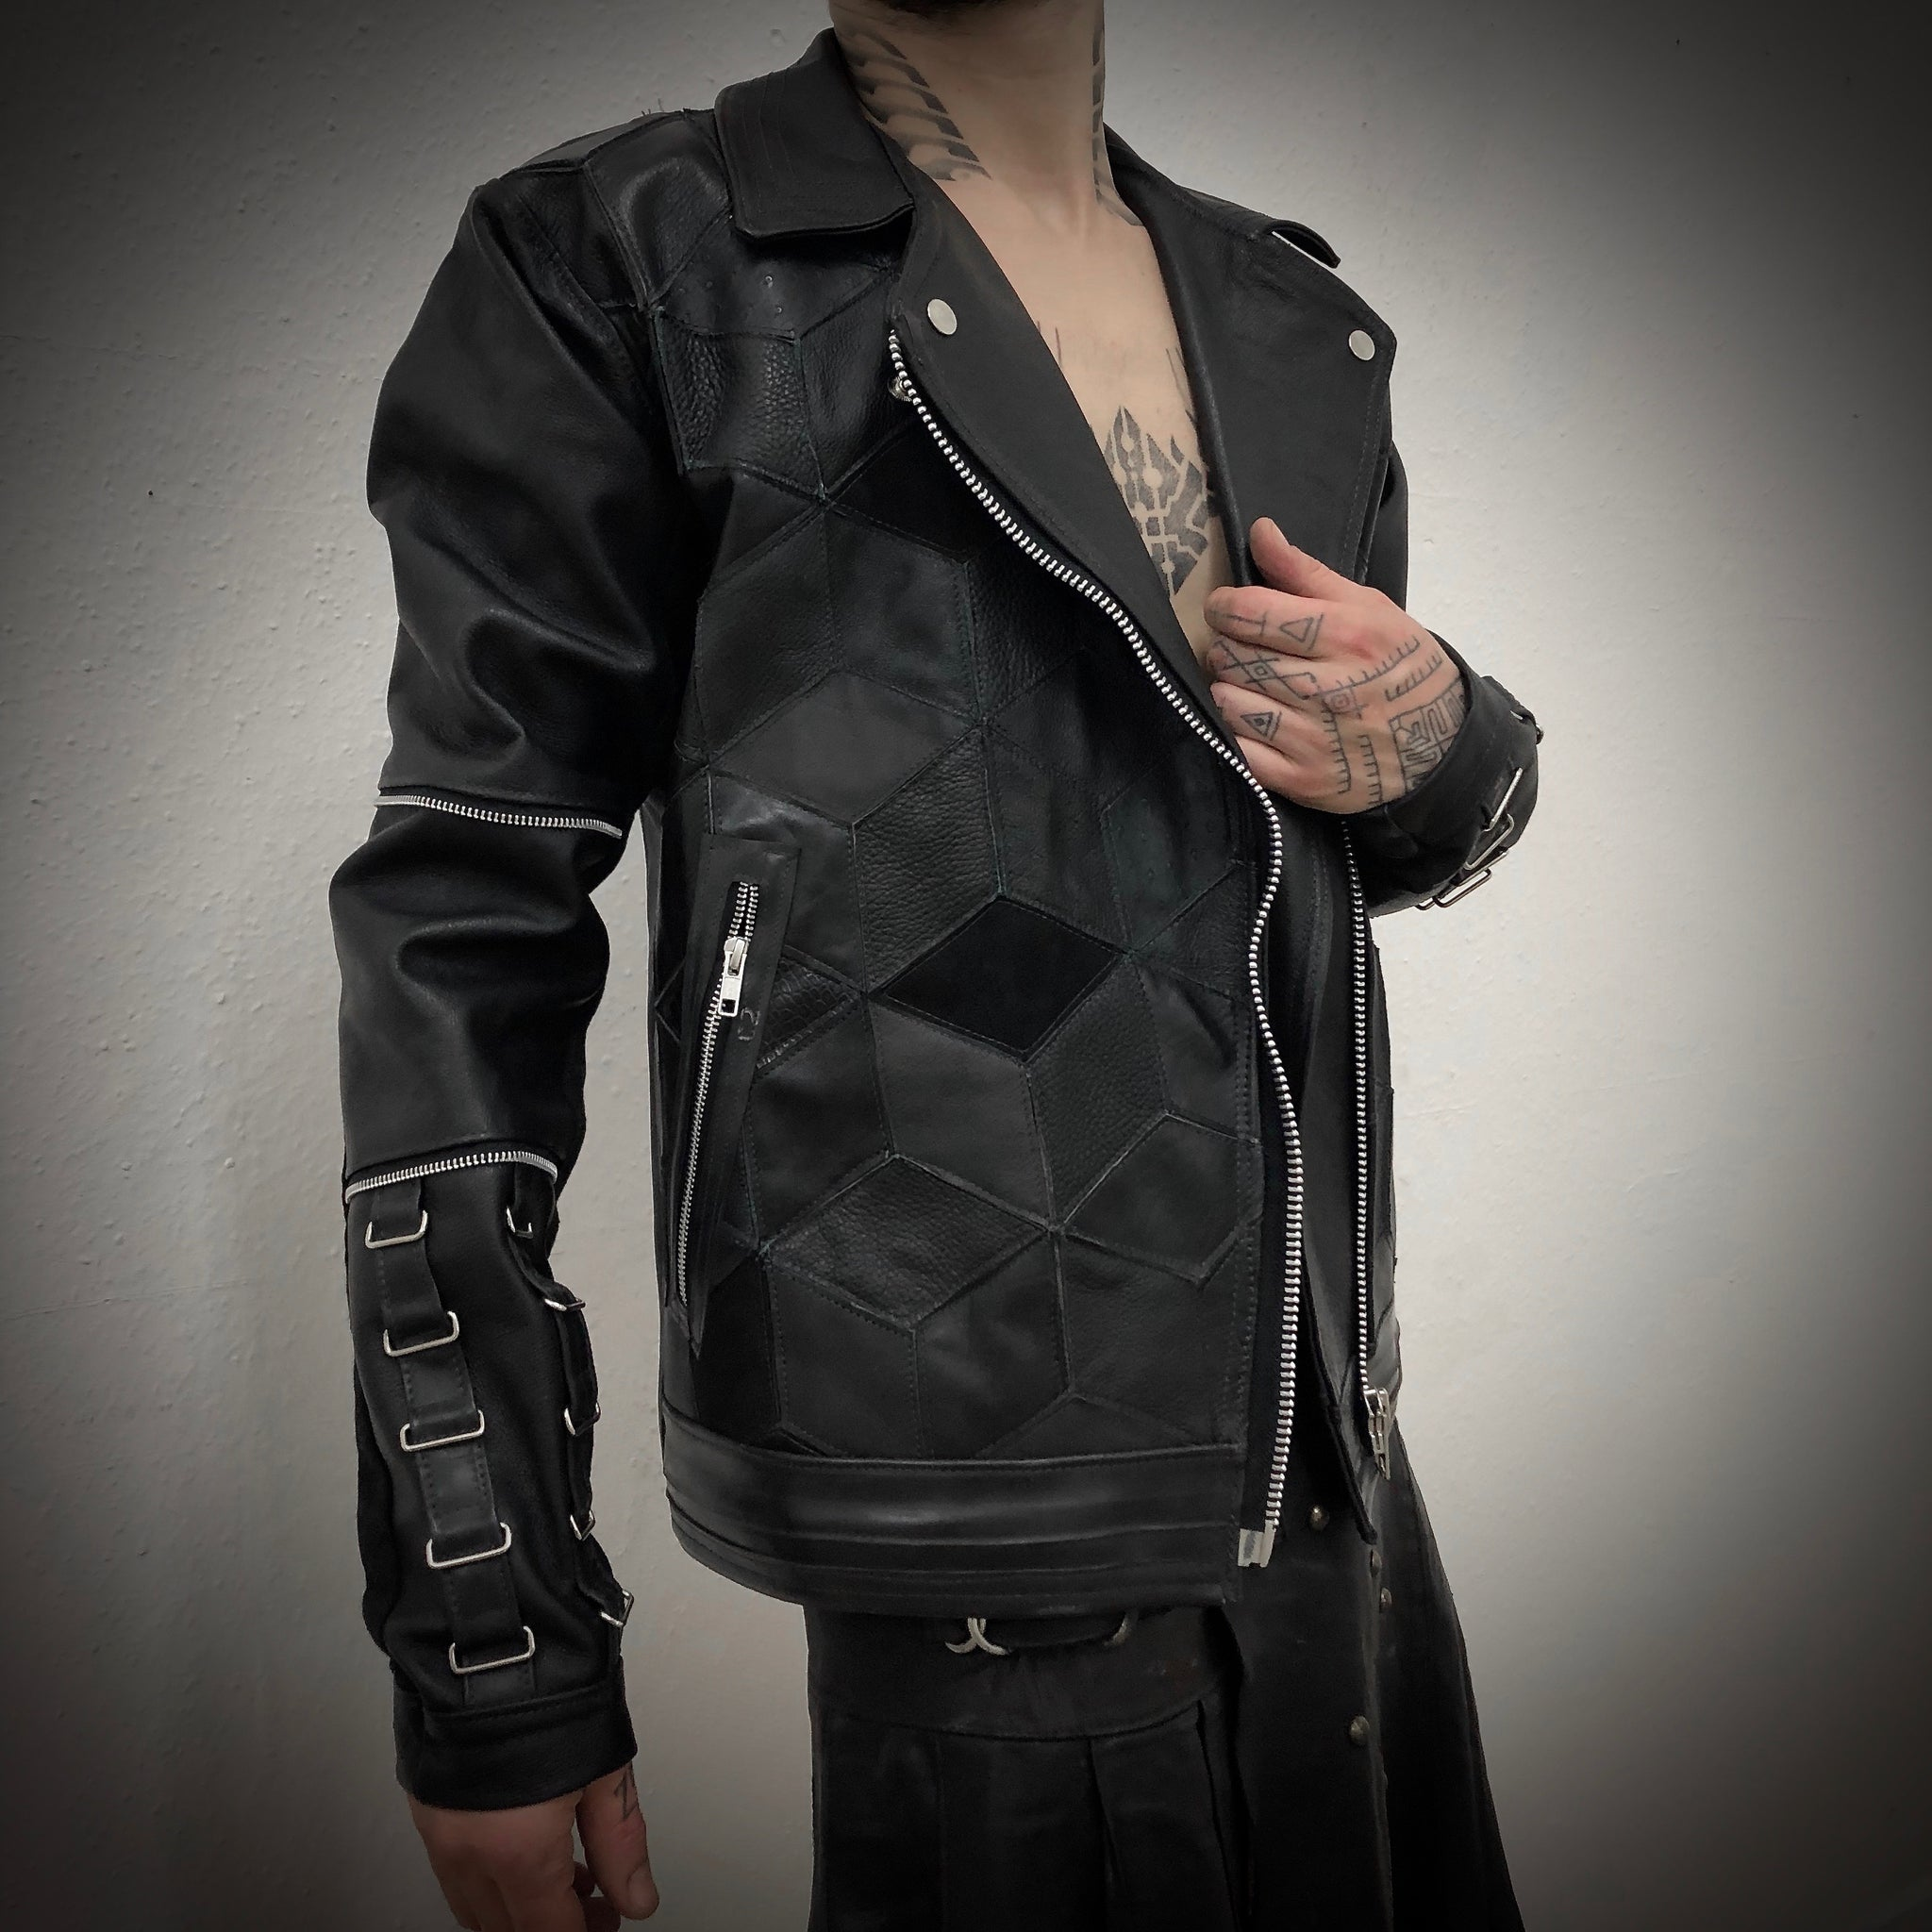 Hexagonal Shades of Black Jacket